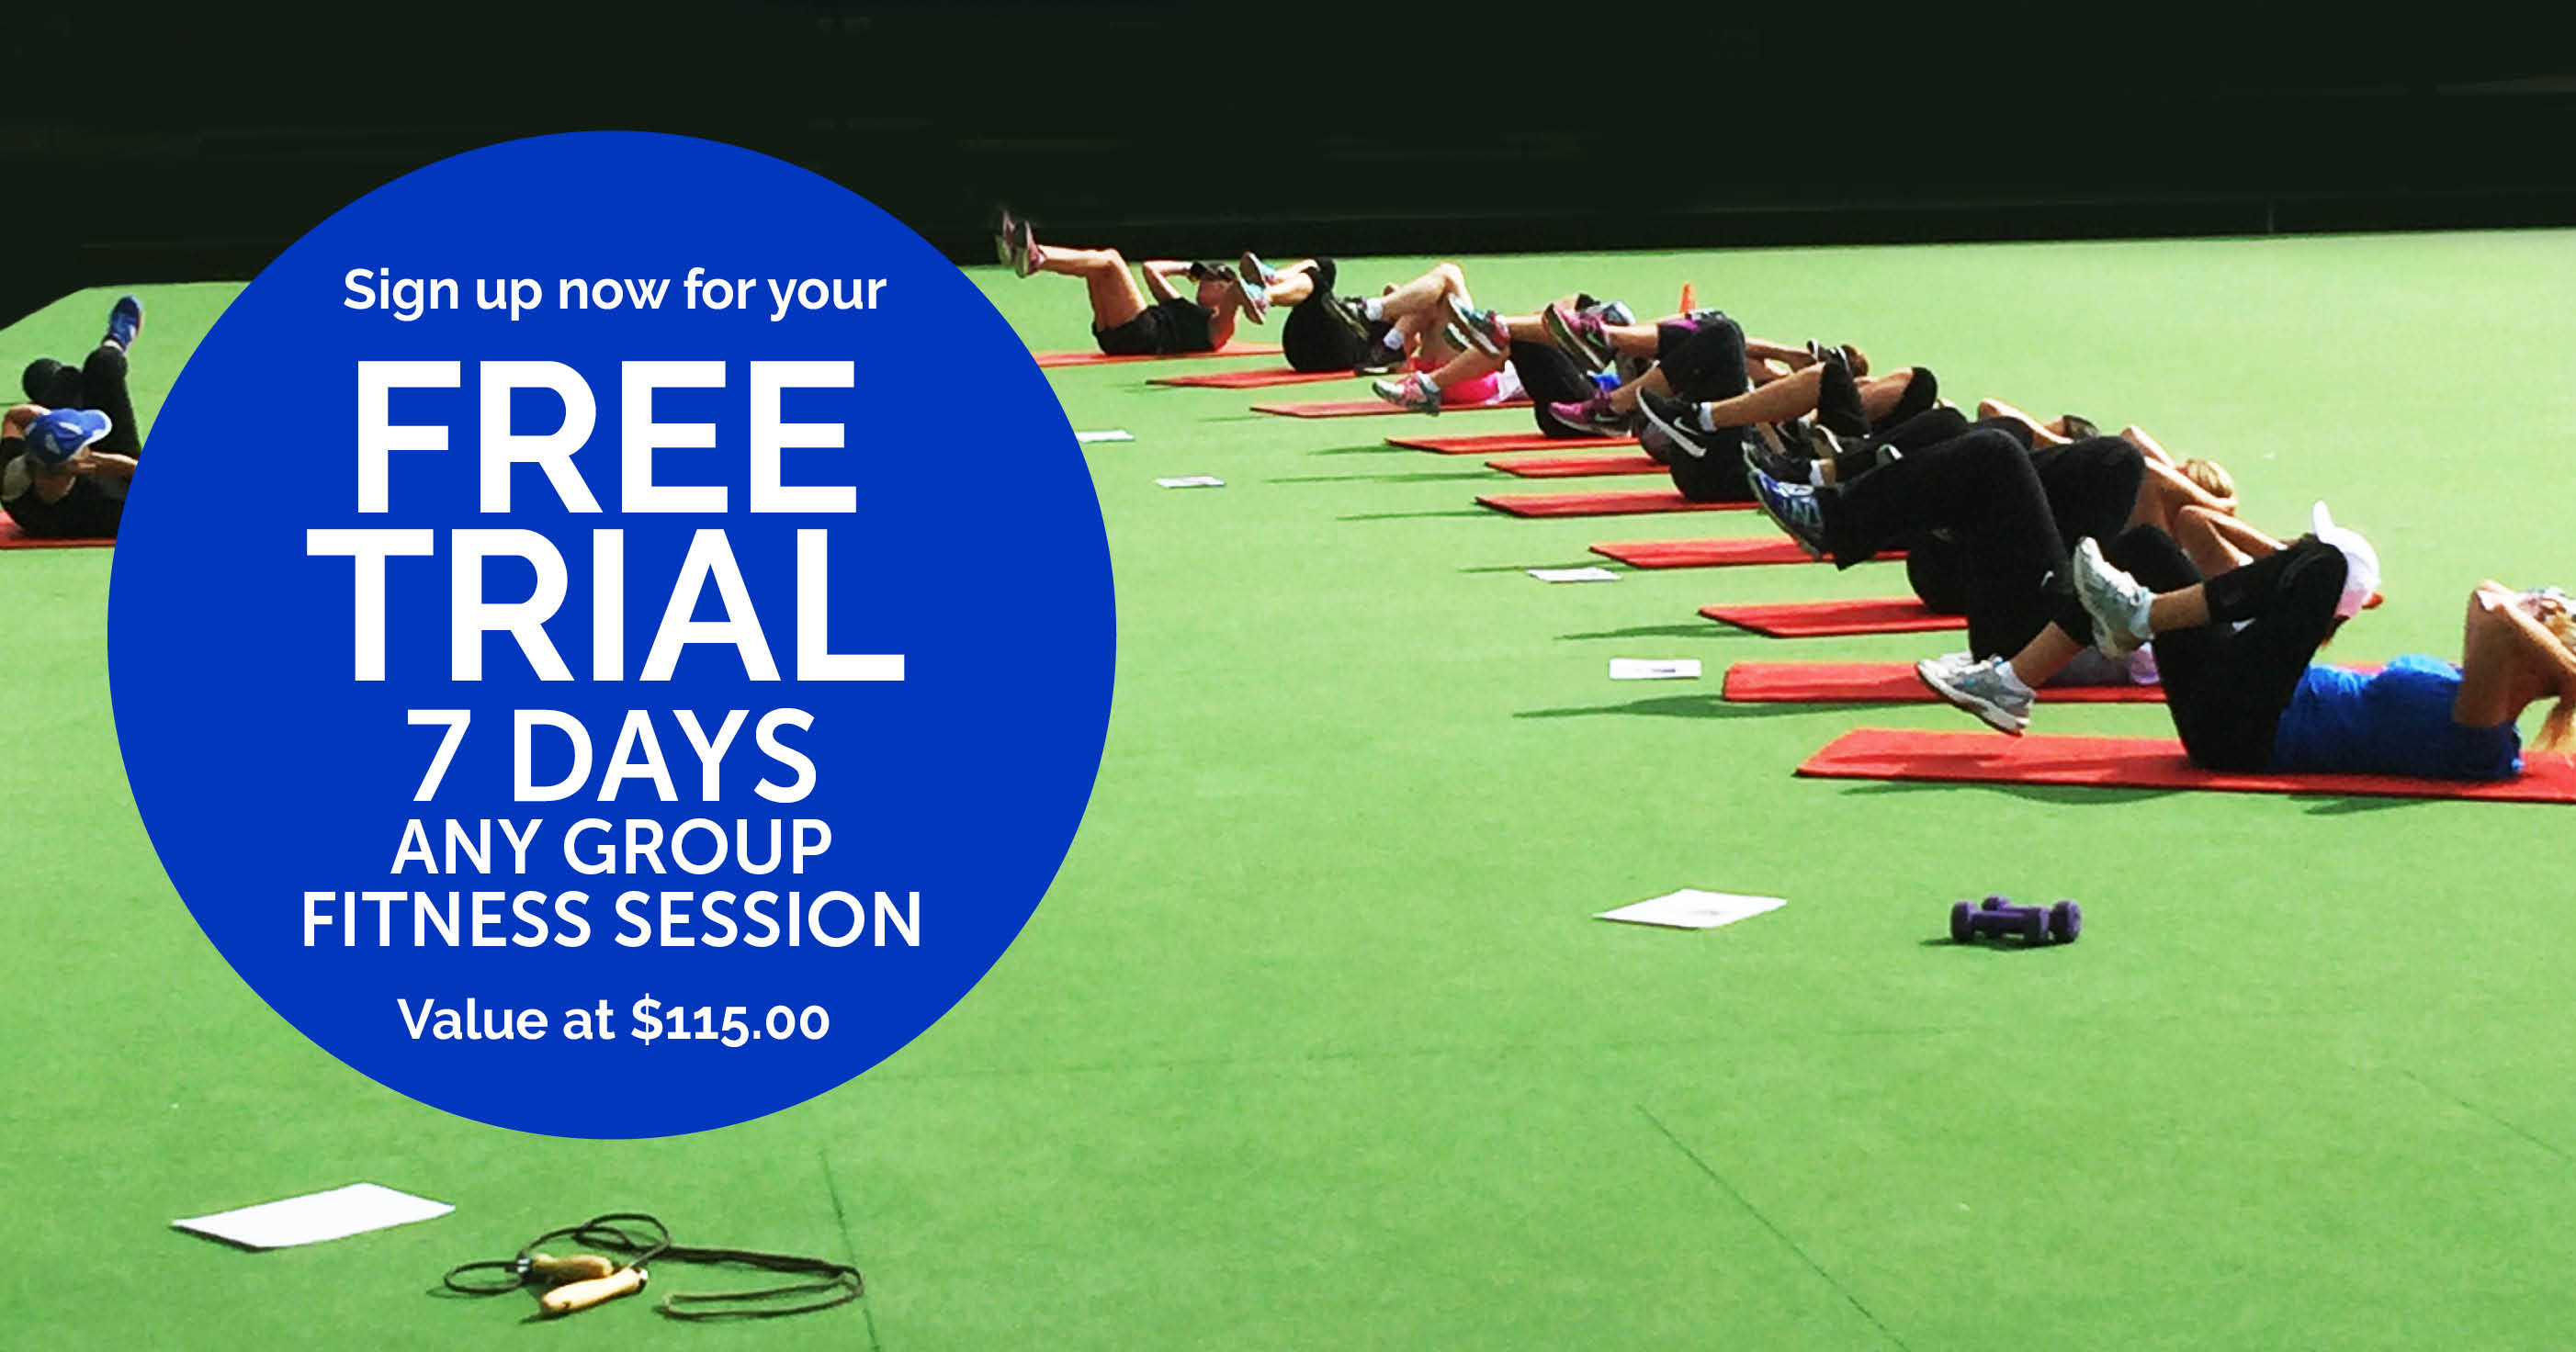 7 Day Free Trial Group Fitness Kew